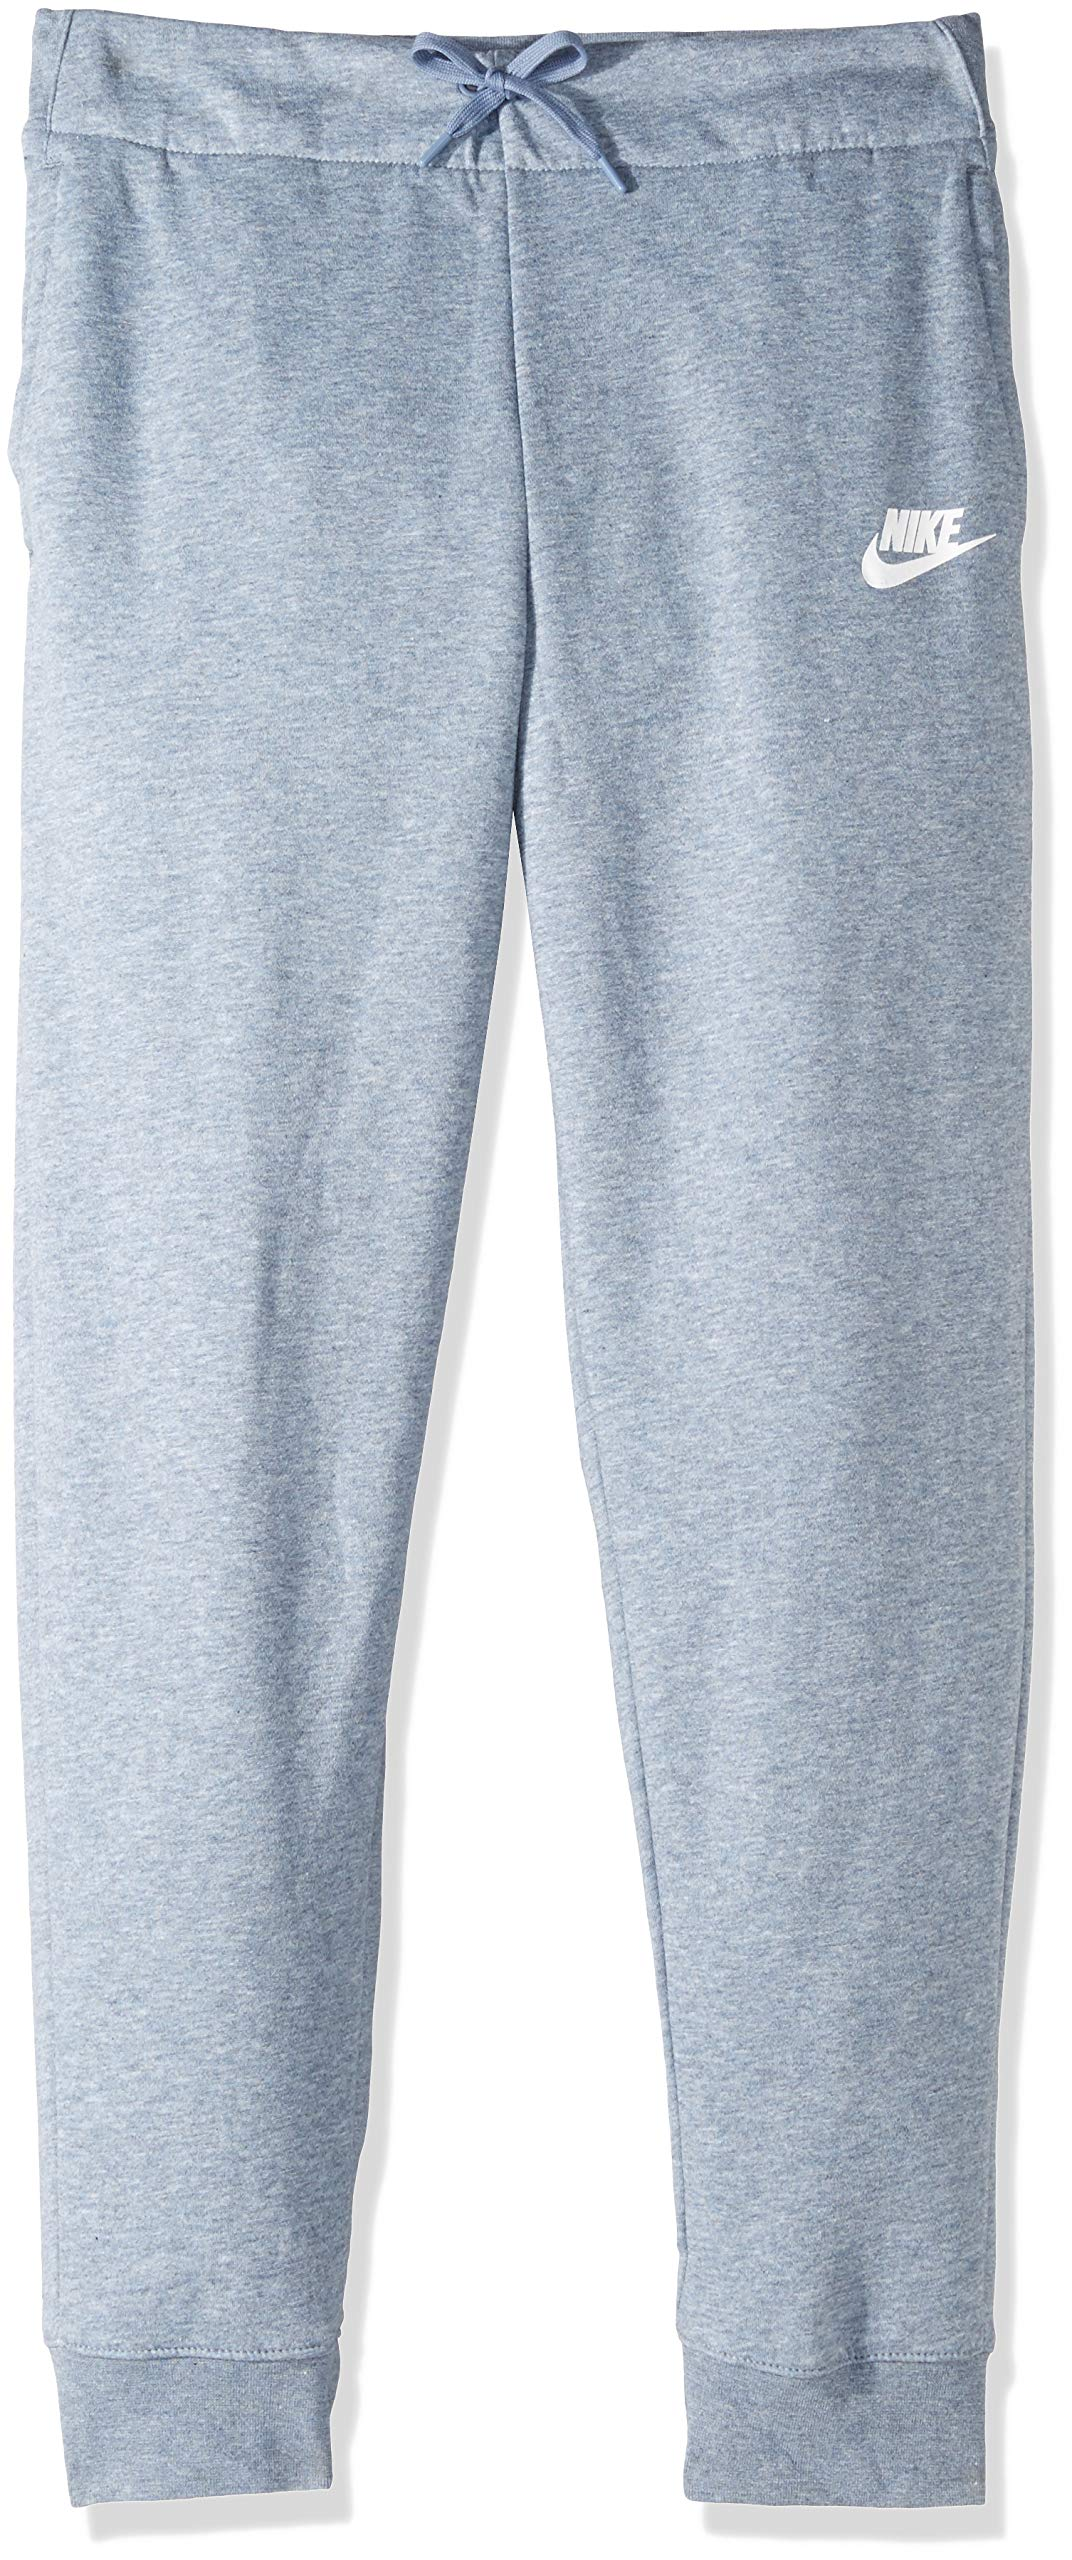 NIKE Sportswear Girls' Pants, Ashen Slate/Heather/White, X-Small